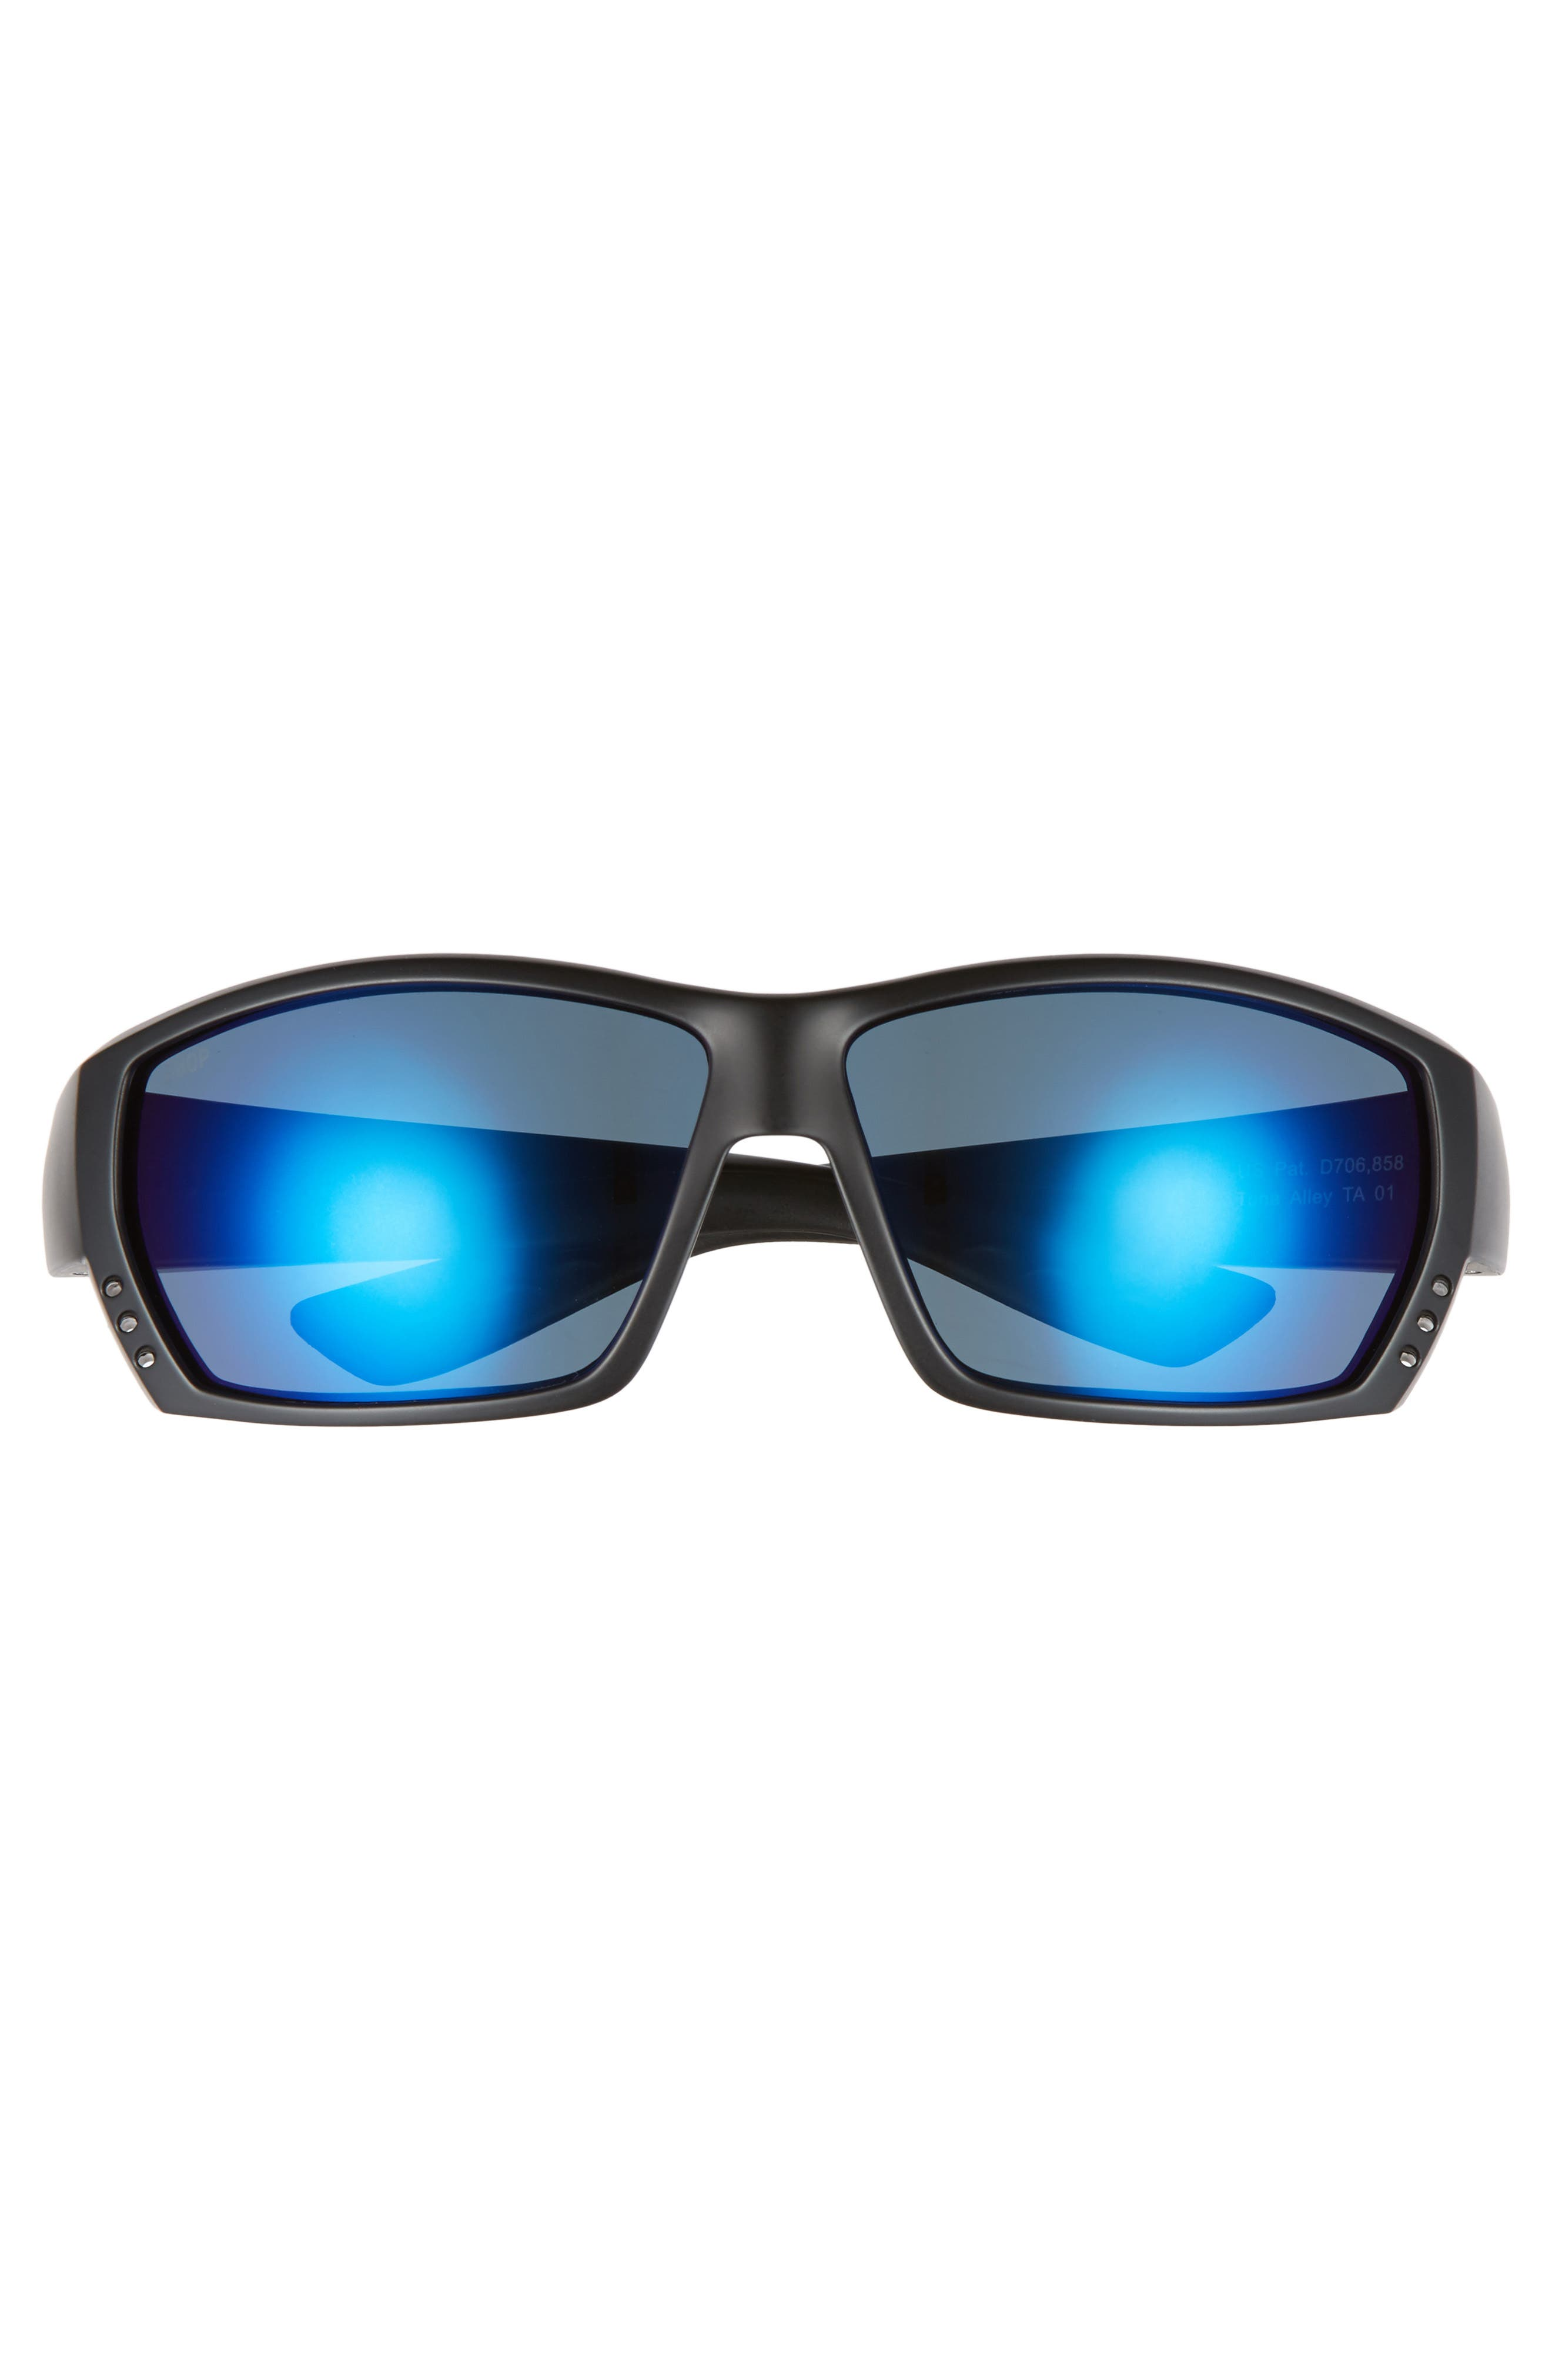 Tuna Alley 60mm Polarized Sunglasses,                             Alternate thumbnail 2, color,                             BLACKOUT/ BLUE MIRROR